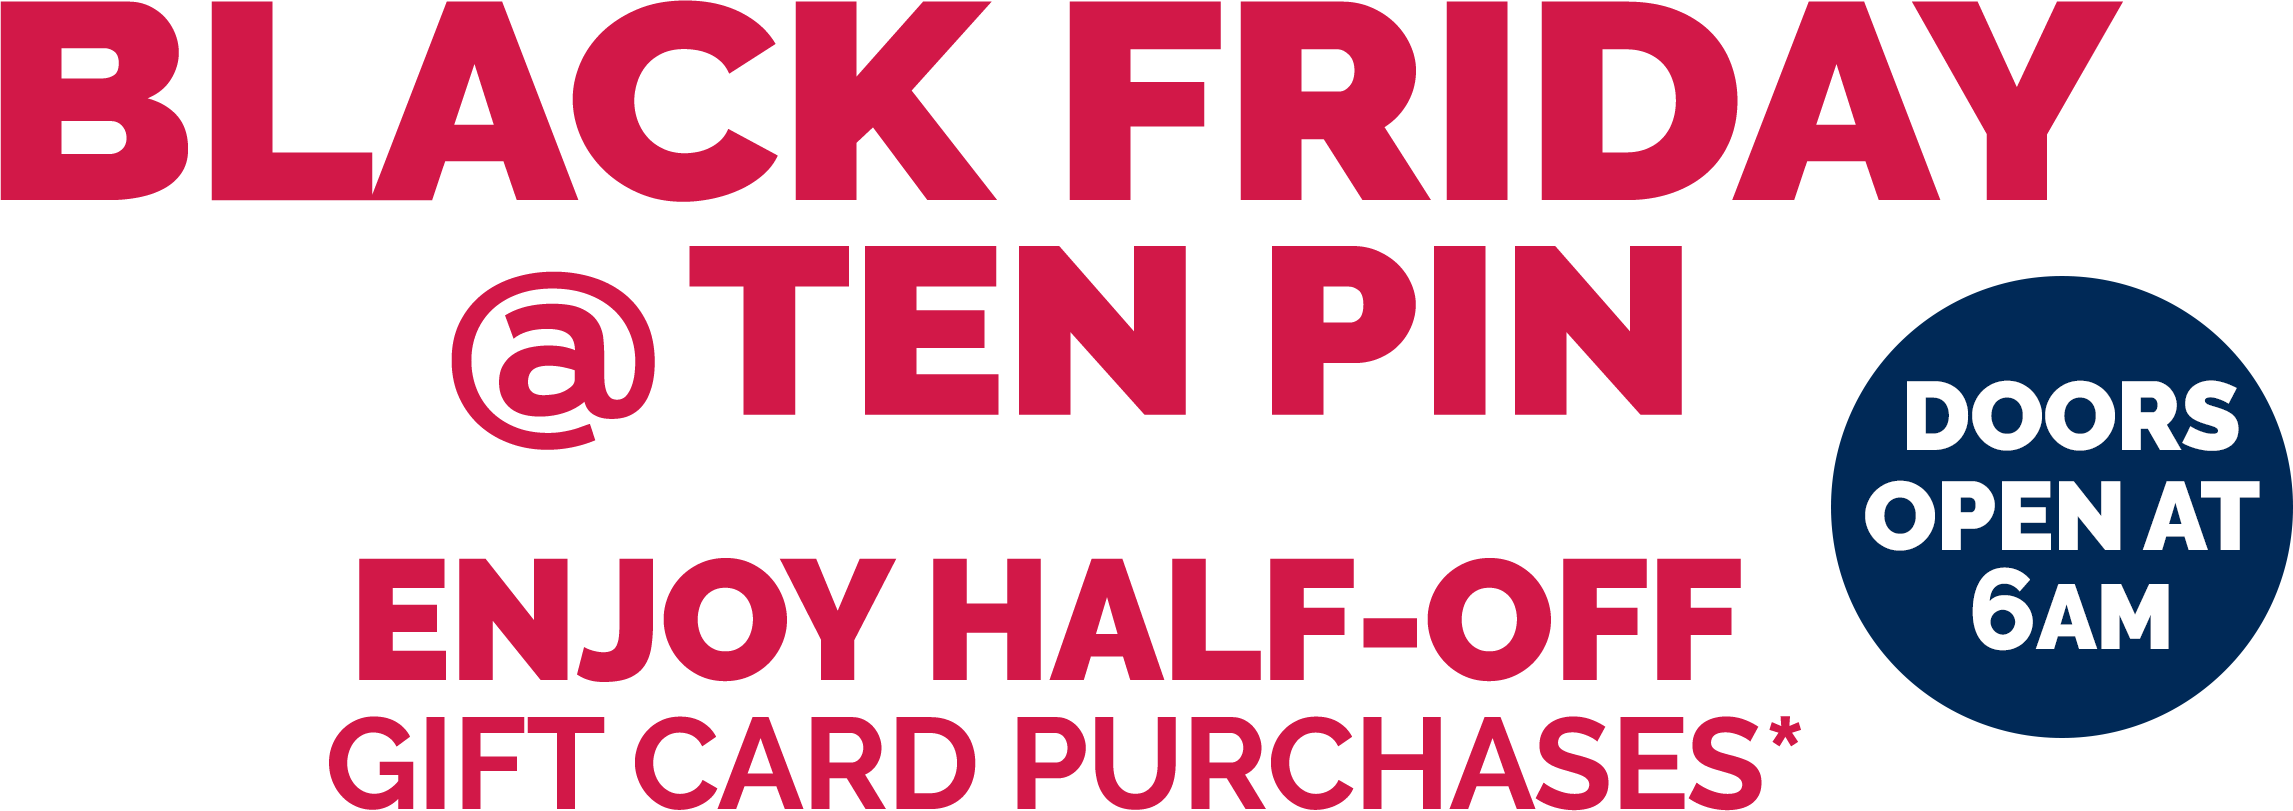 BLACK FRIDAY @ TEN PIN Enjoy HALF-off  Gift card purchases* | Doors OPEN at 6AM